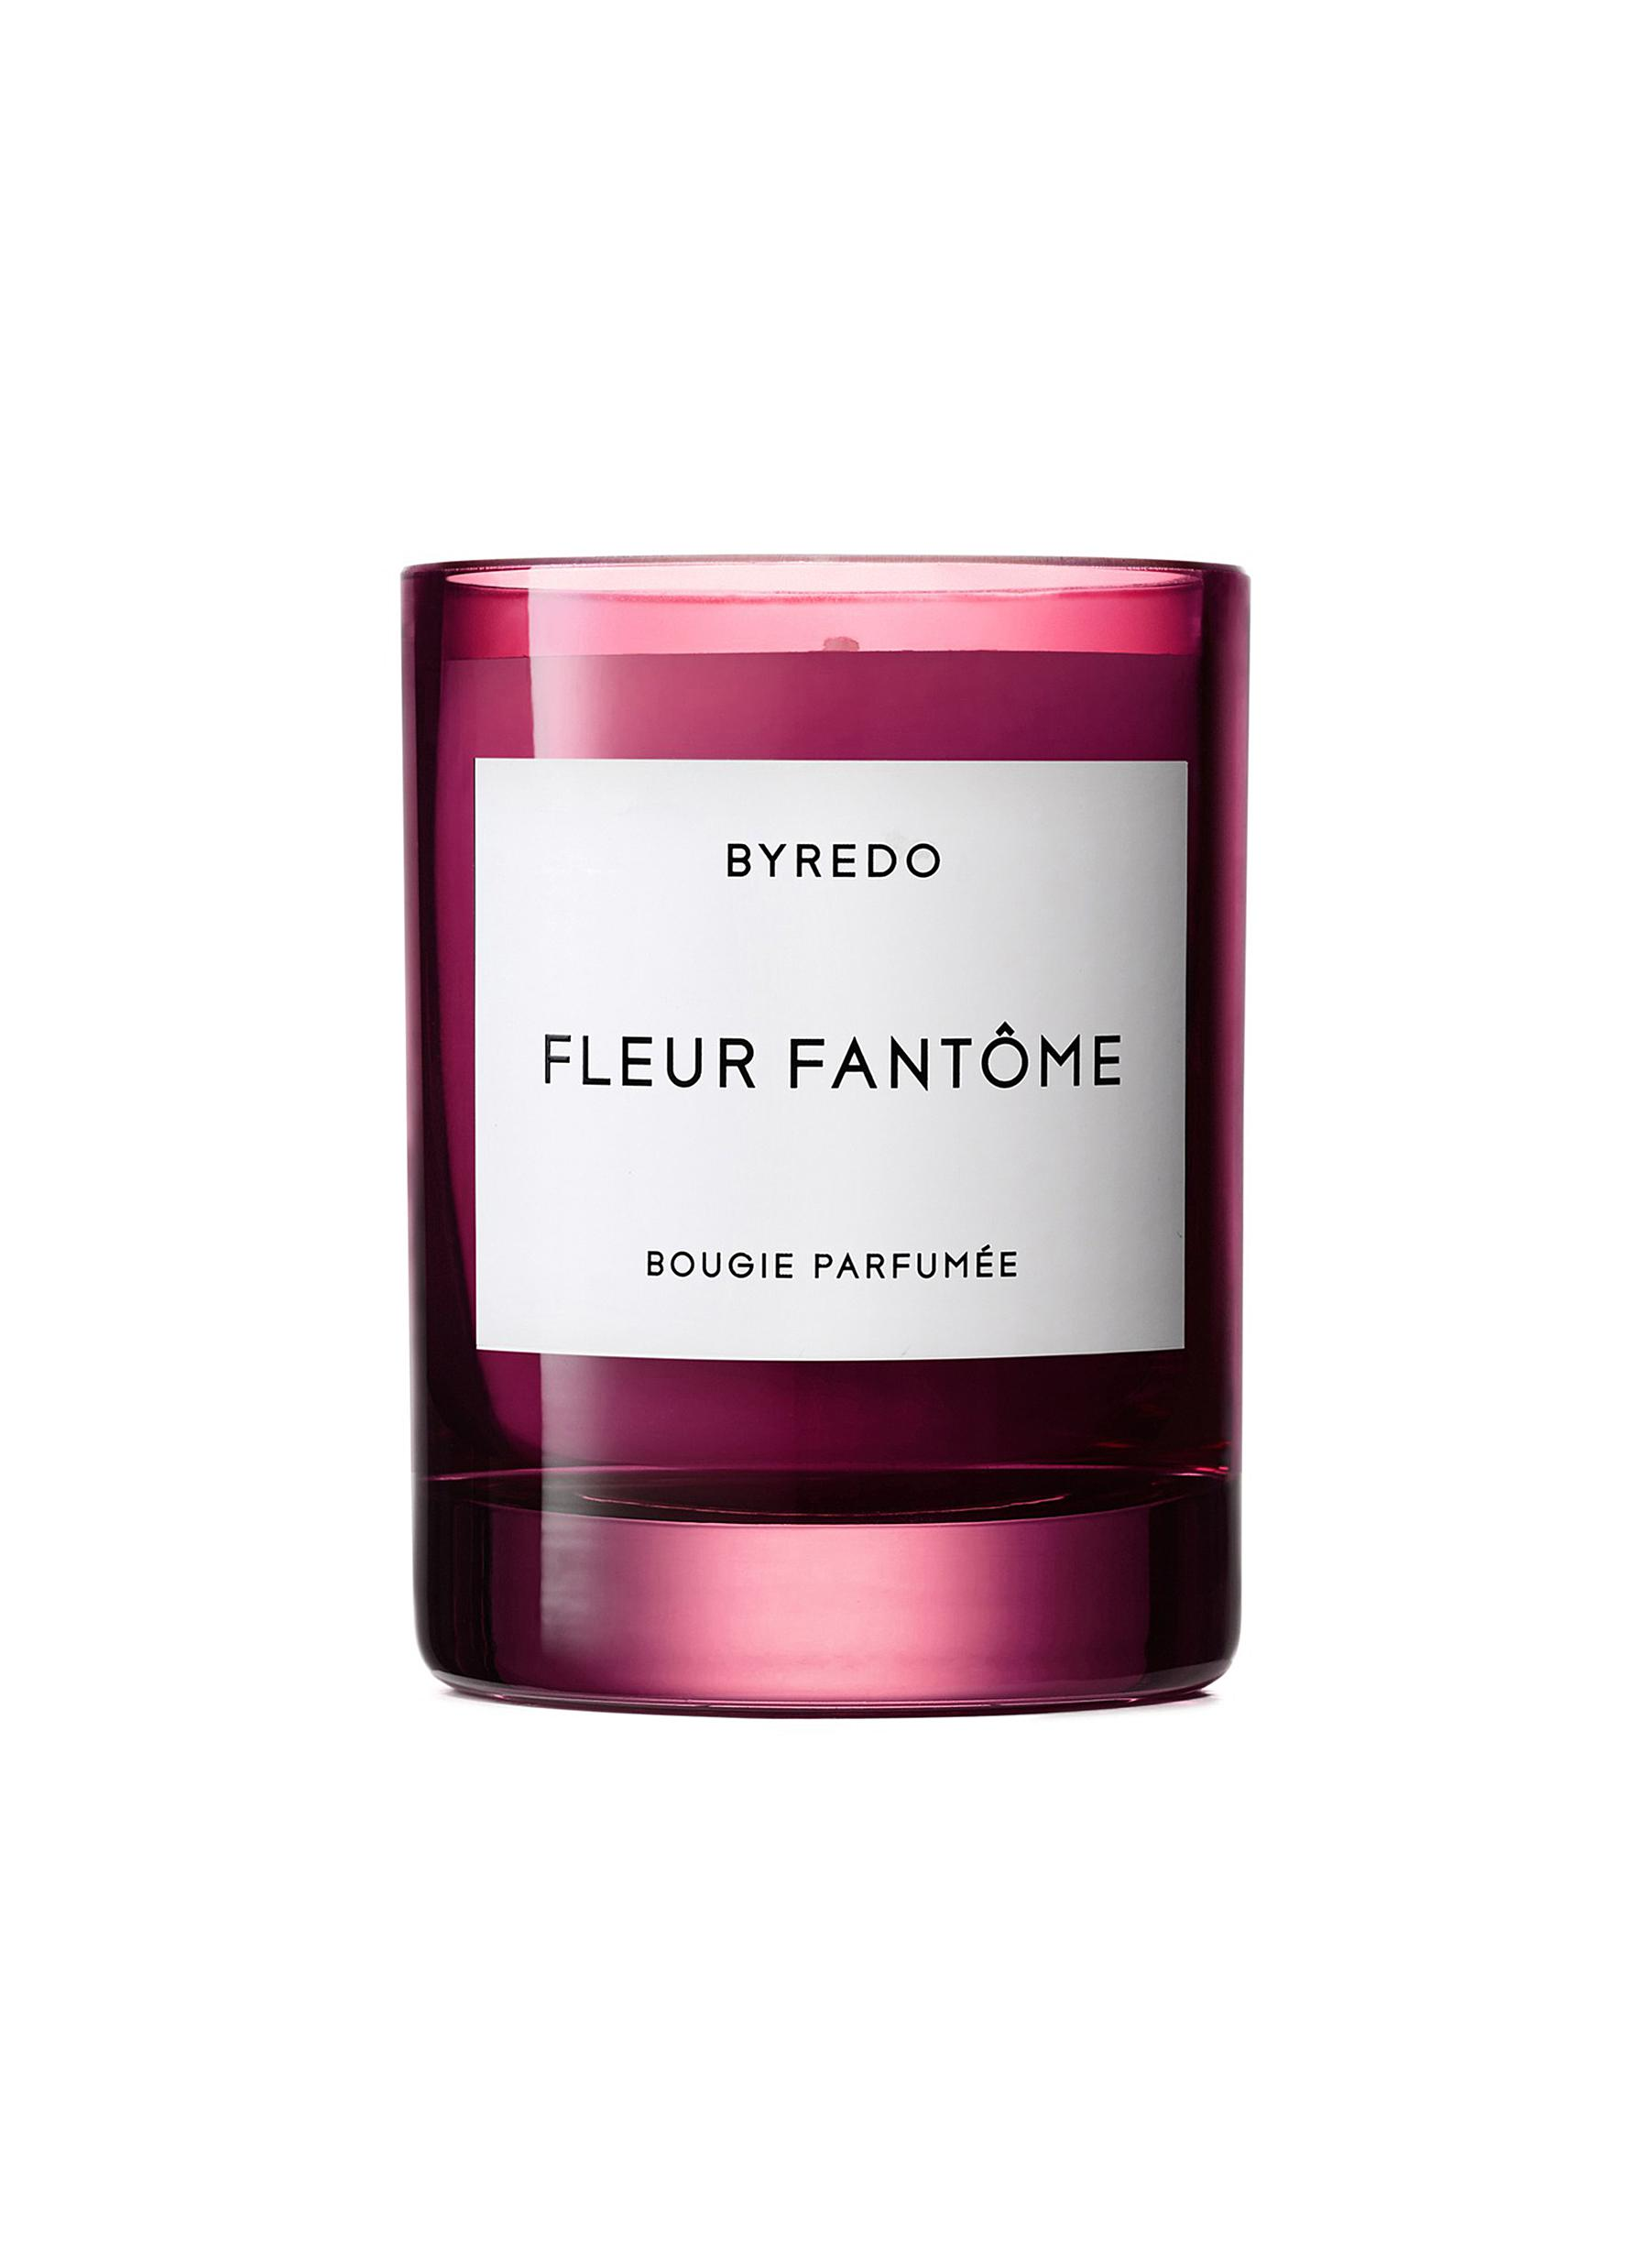 Fleur Fantôme fragranced 2016 holiday candle 240g by BYREDO